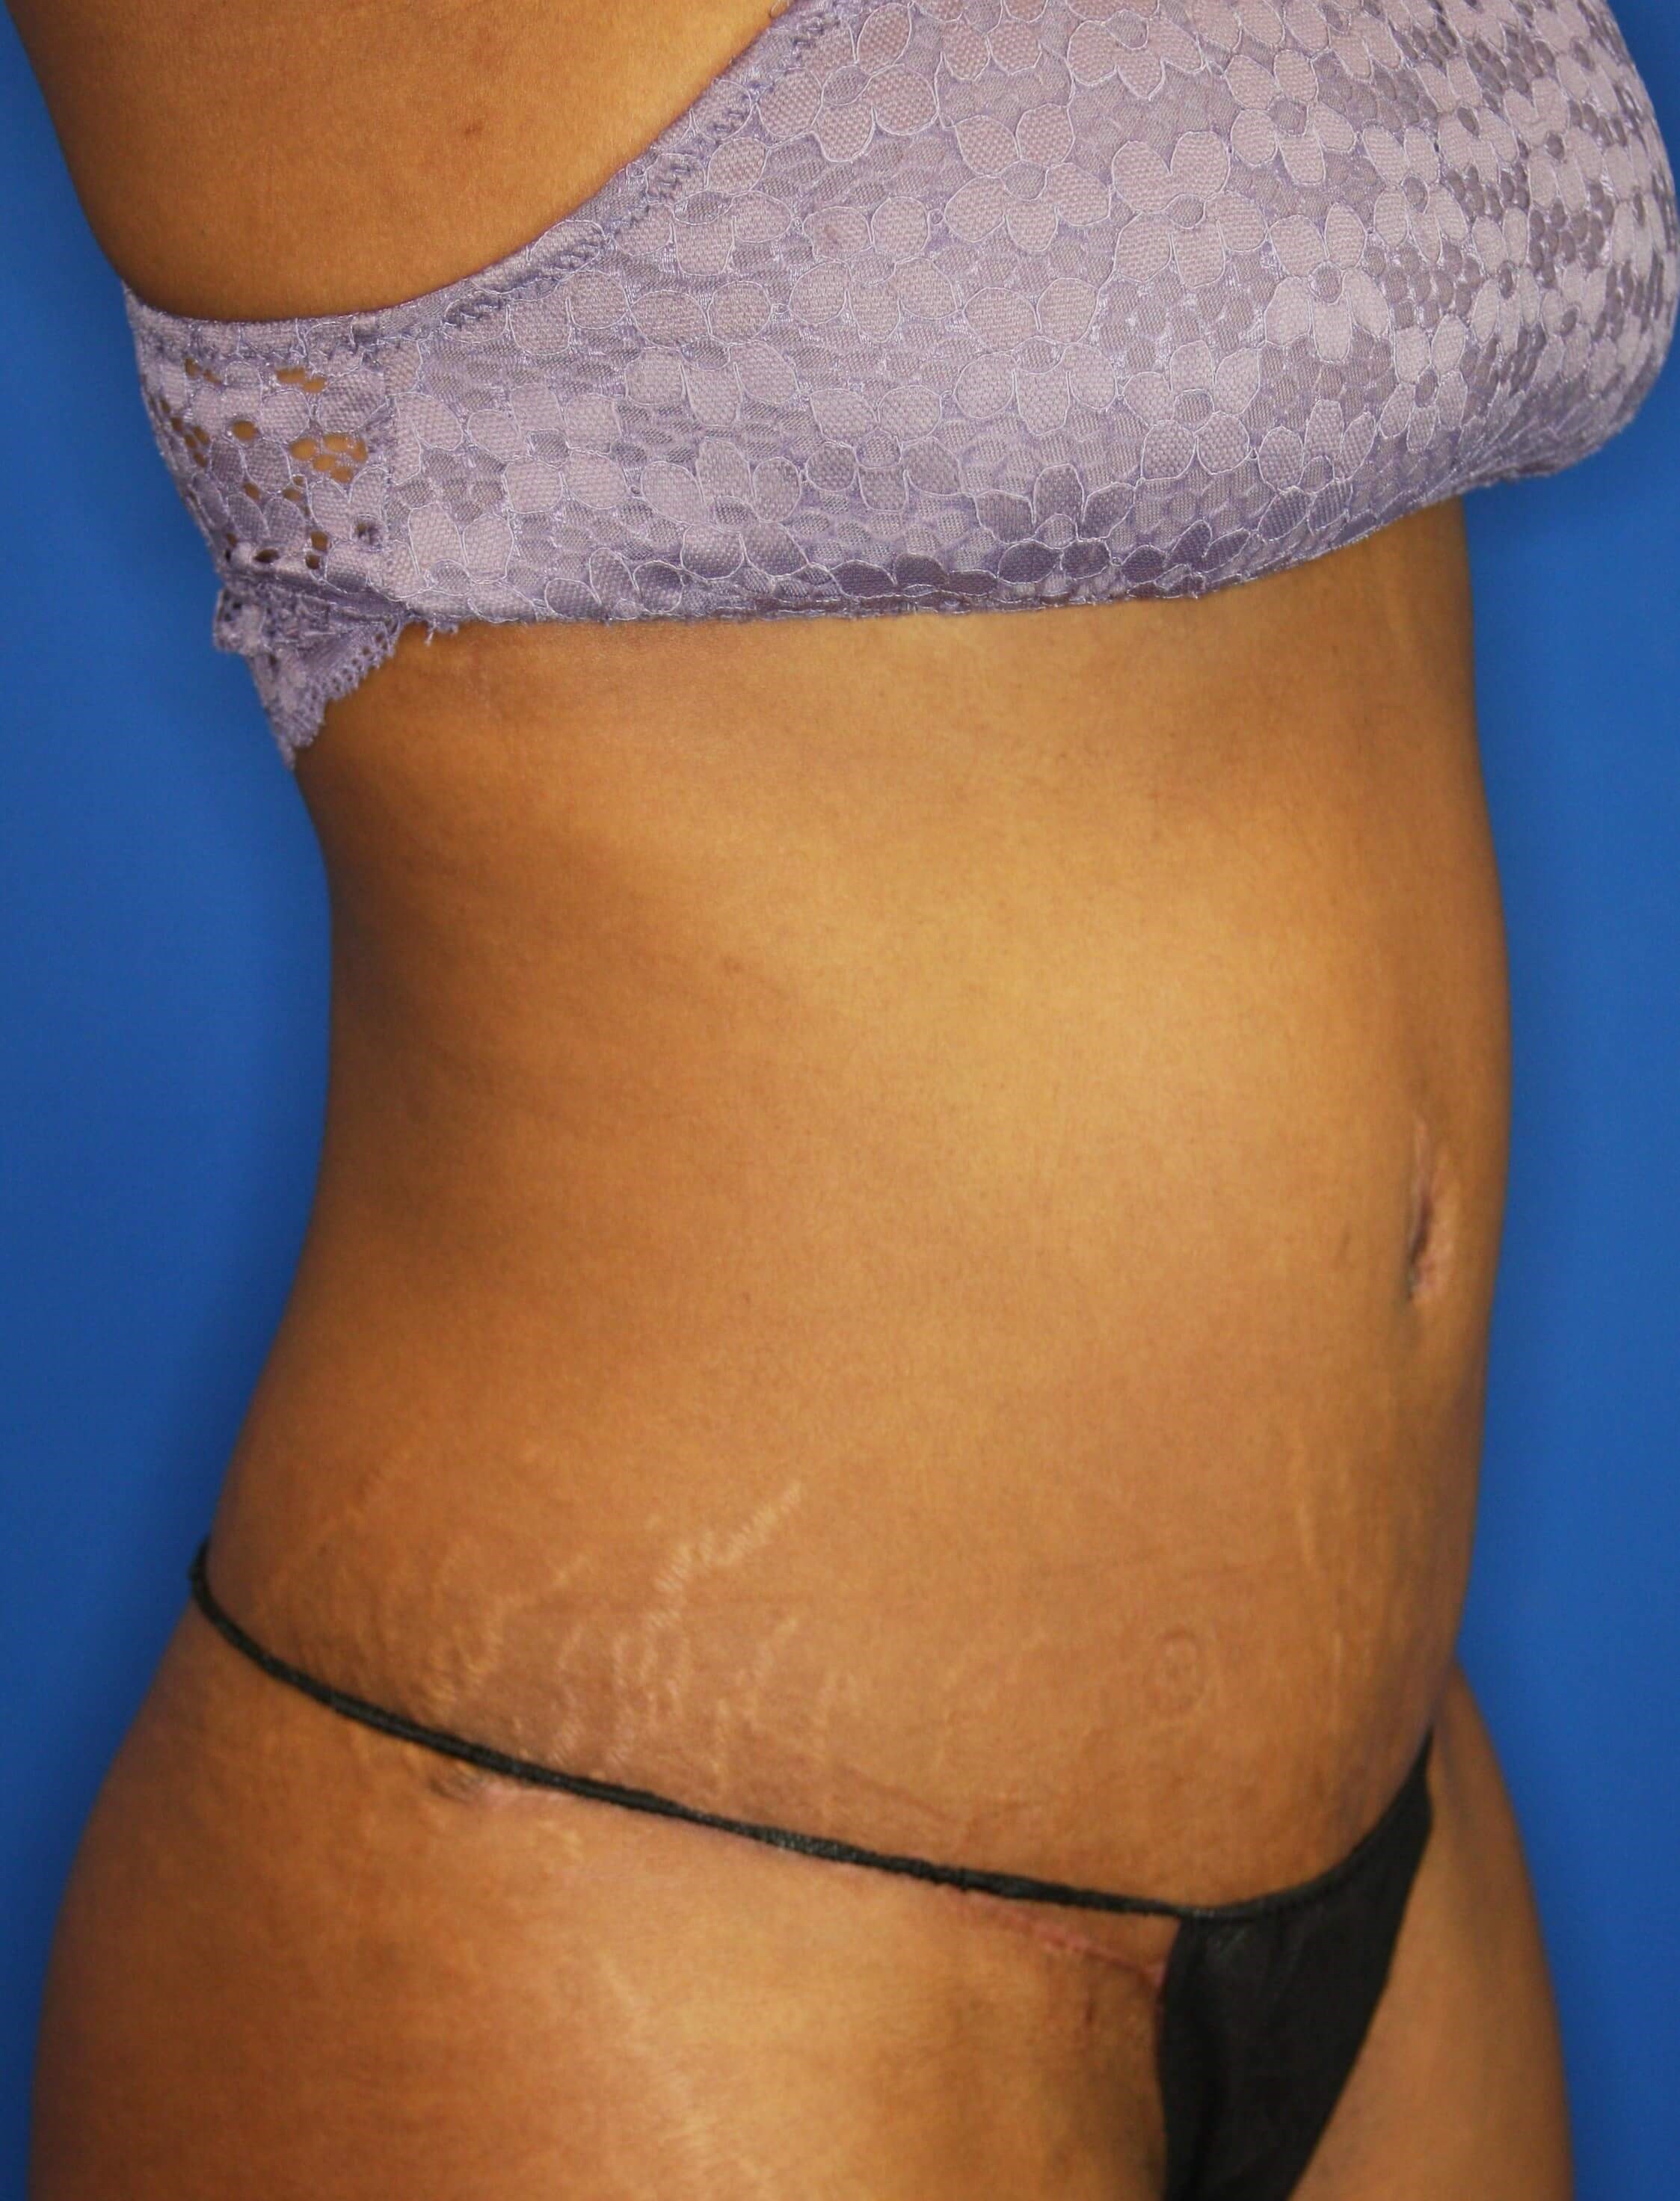 Tummy Tuck in Downers Grove,IL 3 months after